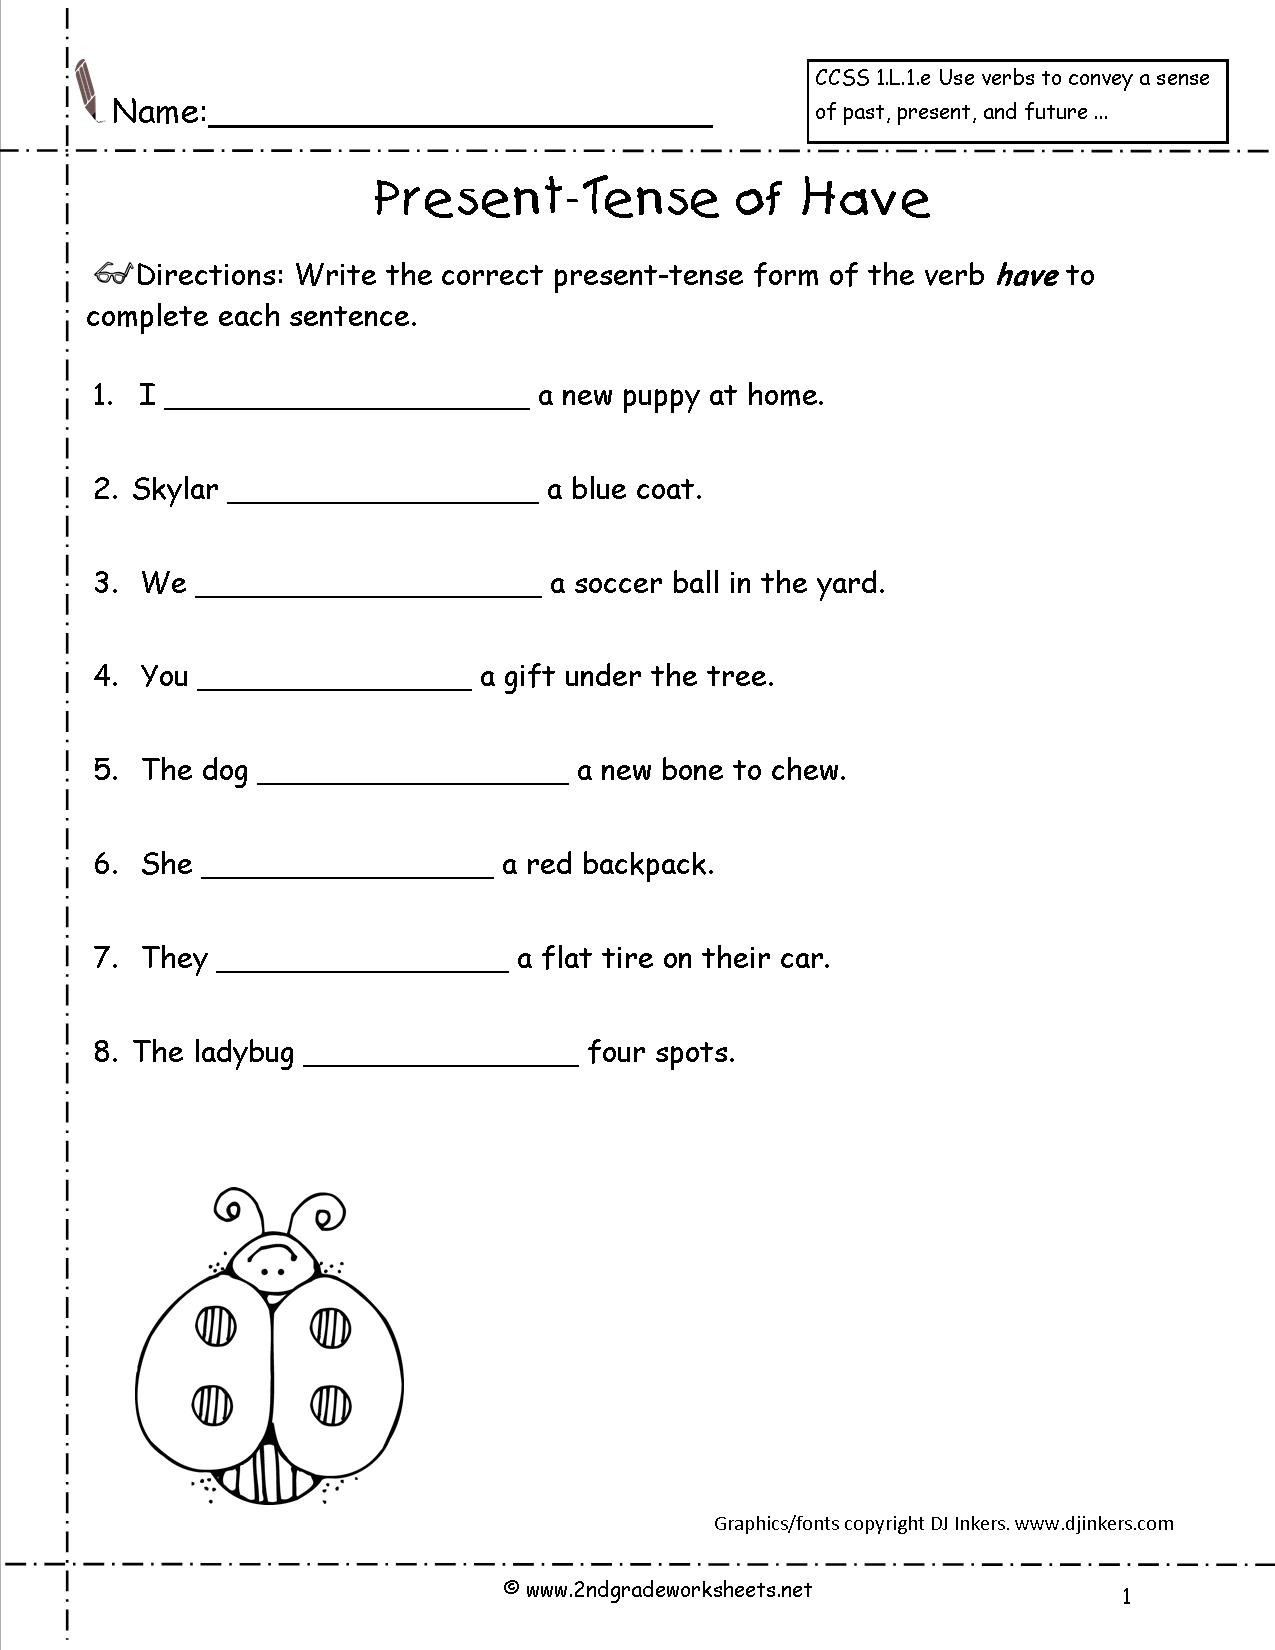 Verb Tense Worksheets 1st Grade Present Progressive Tense Worksheet Grade 4